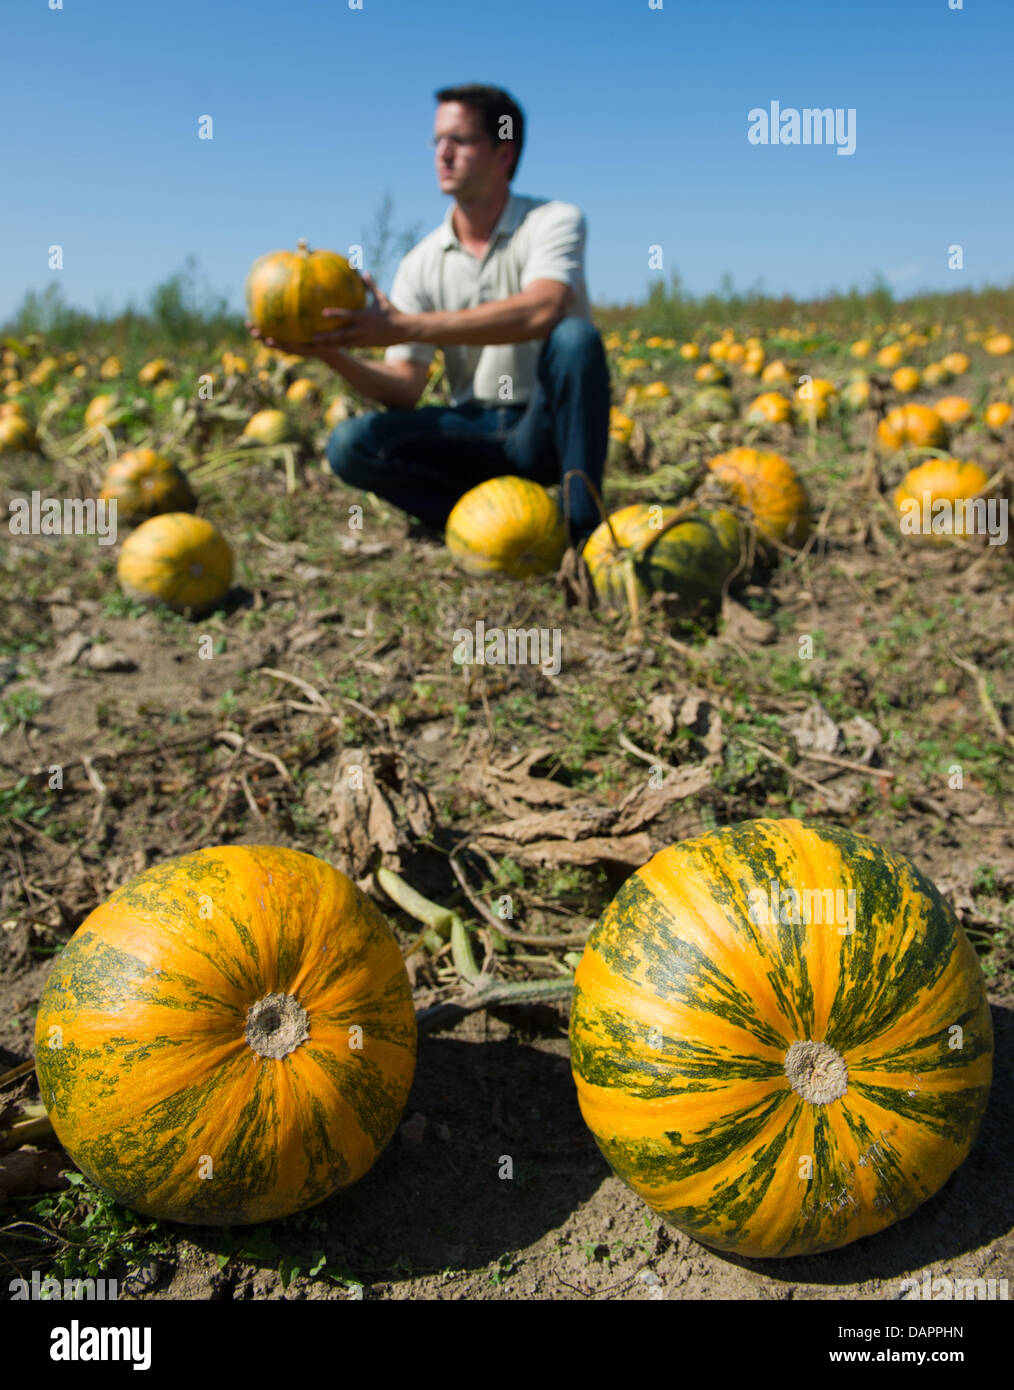 Farmer Thomas Syring of the Syring Feinkost company checks oil squashes planted especially for their seeds on a - Stock Image